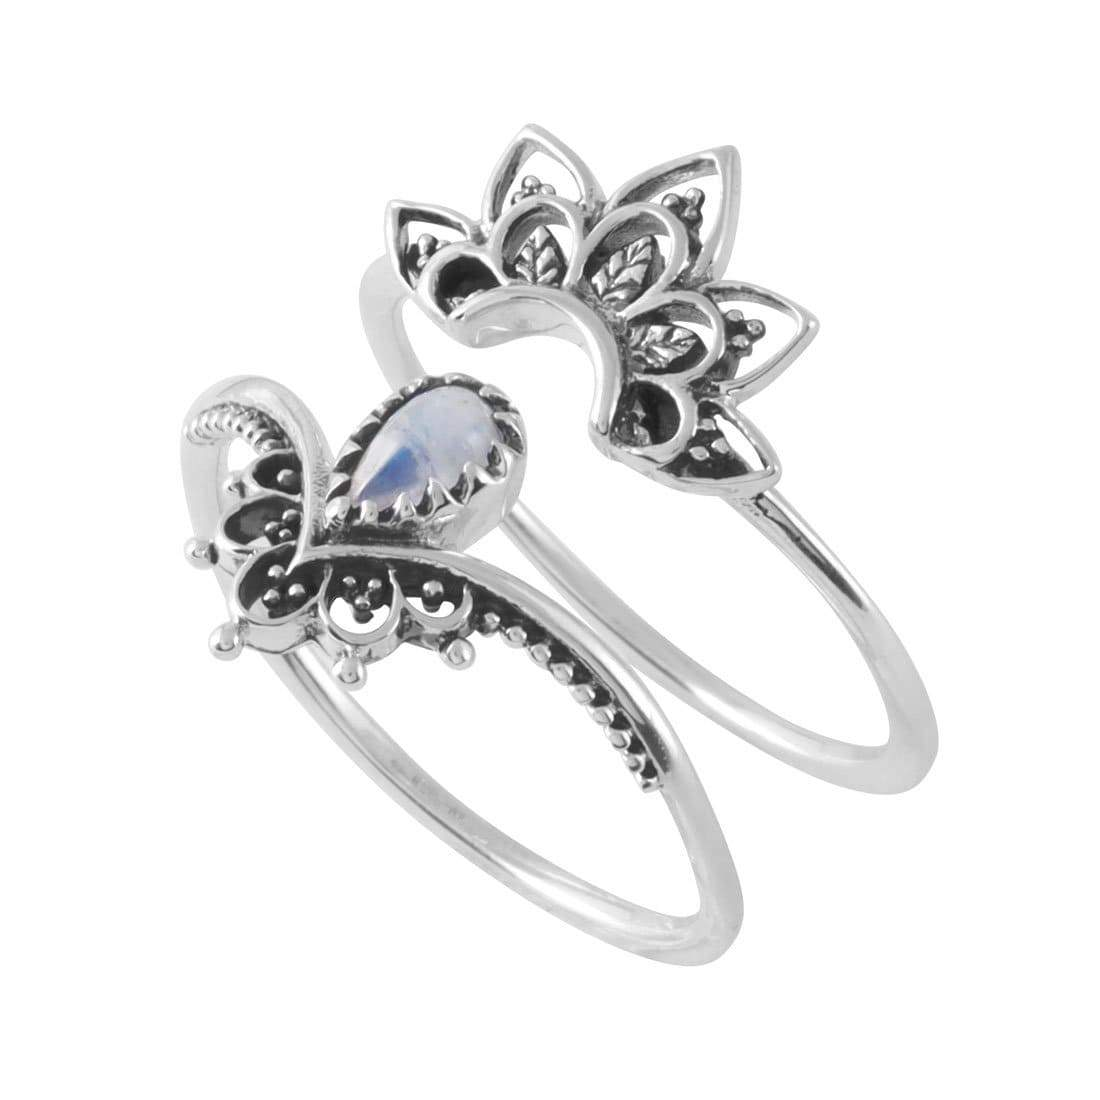 Midsummer Star Ring Sublime Moonstone Ring Set